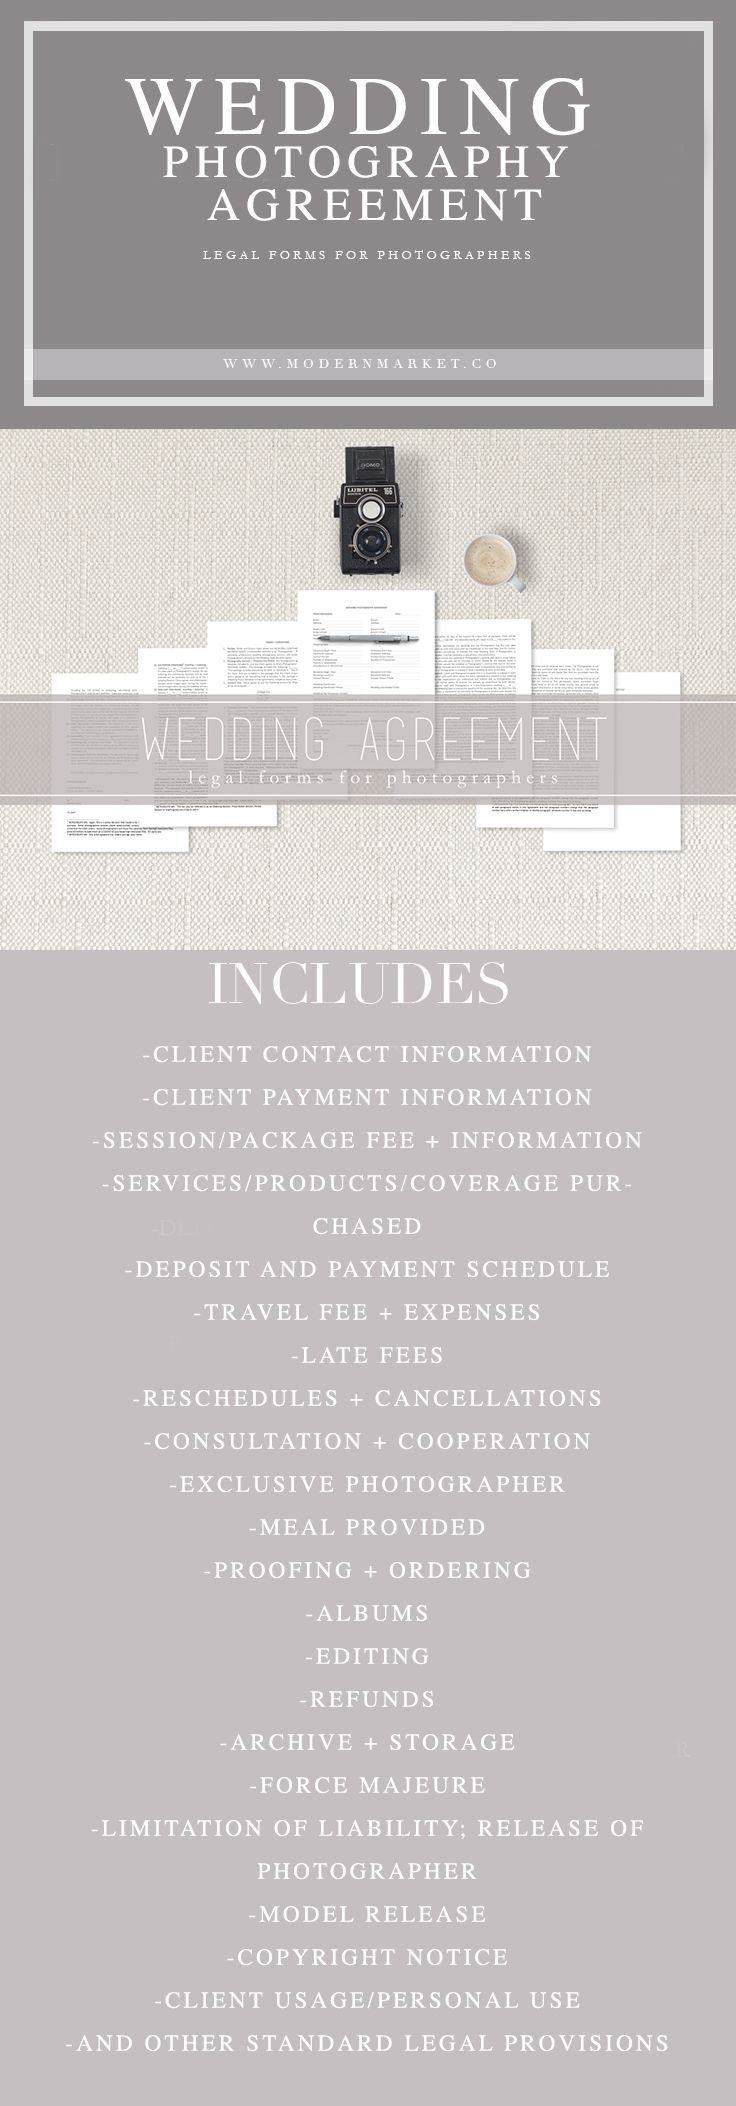 Complete Wedding Agreement Legal Forms For Photographers